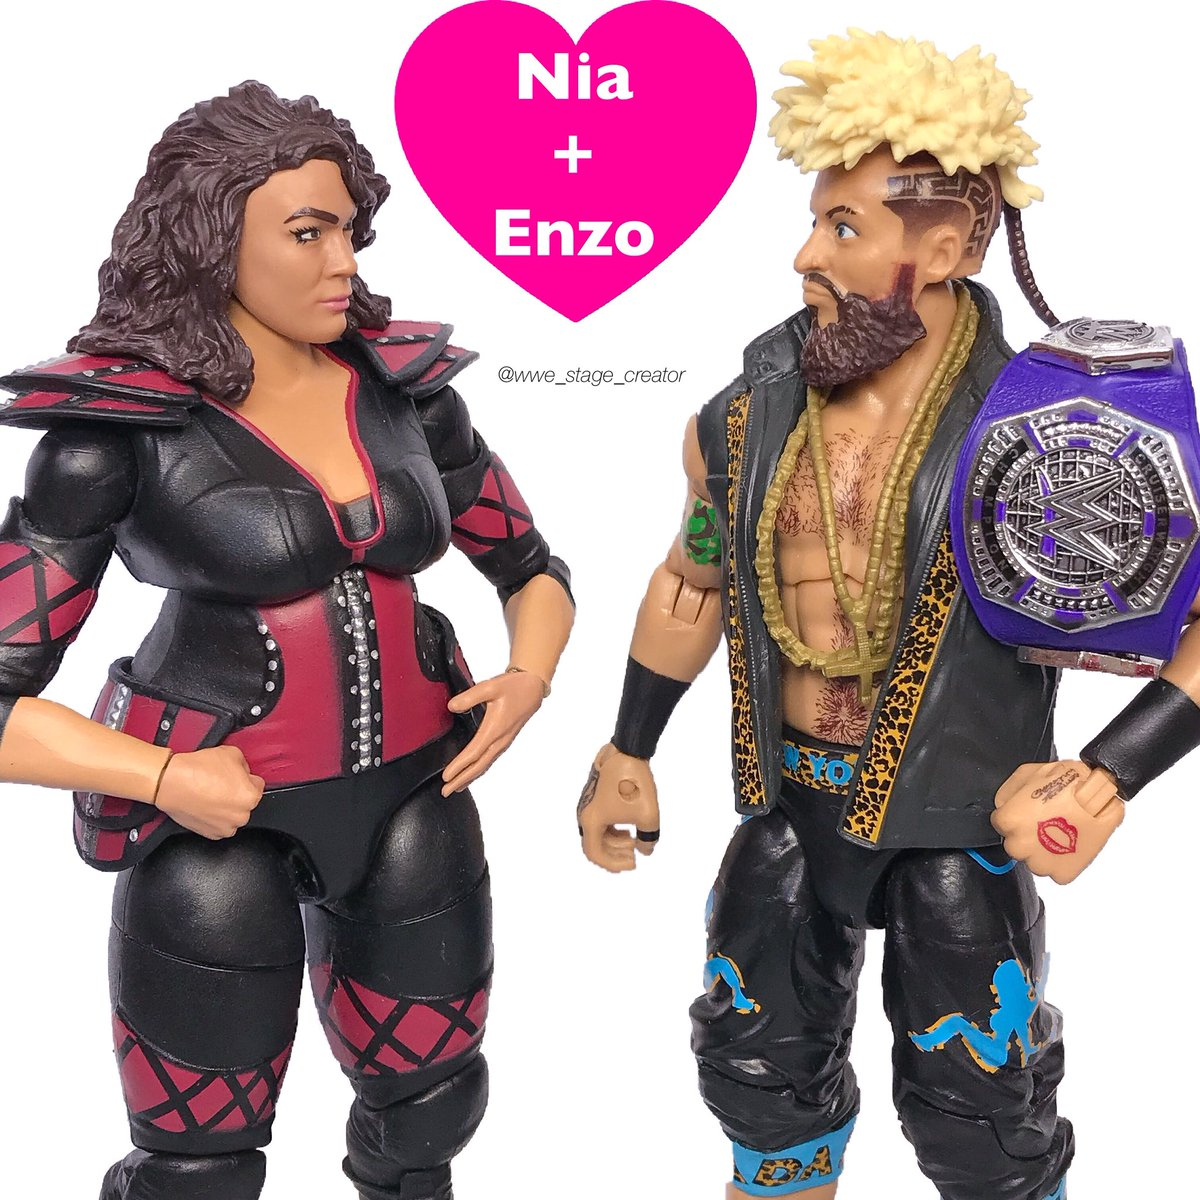 wwe stage creator on twitter what is going on with niajax and enzoamore wwe raw real1 niajaxwwe